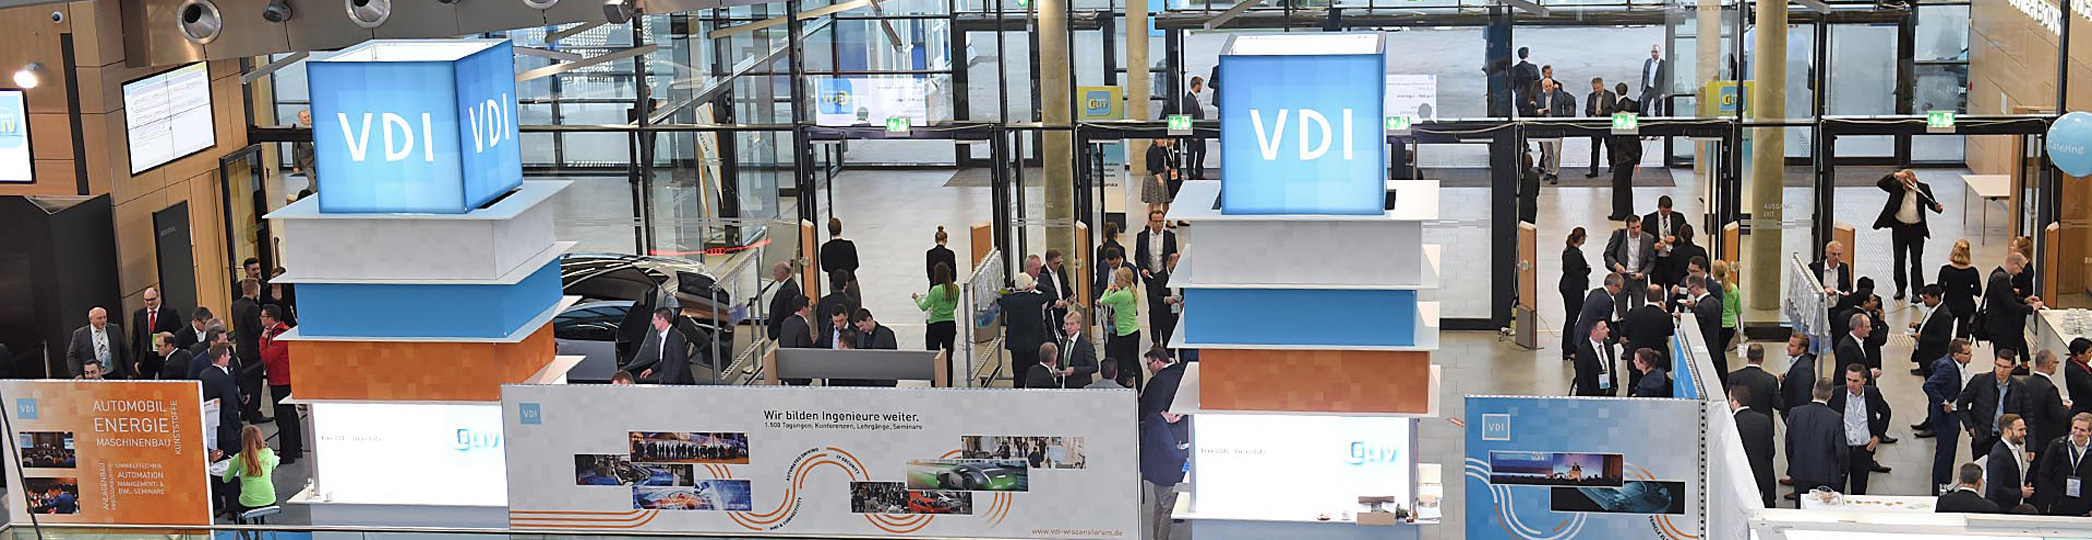 The exhibition at the international congress ELIV offers insights on topics like connected car